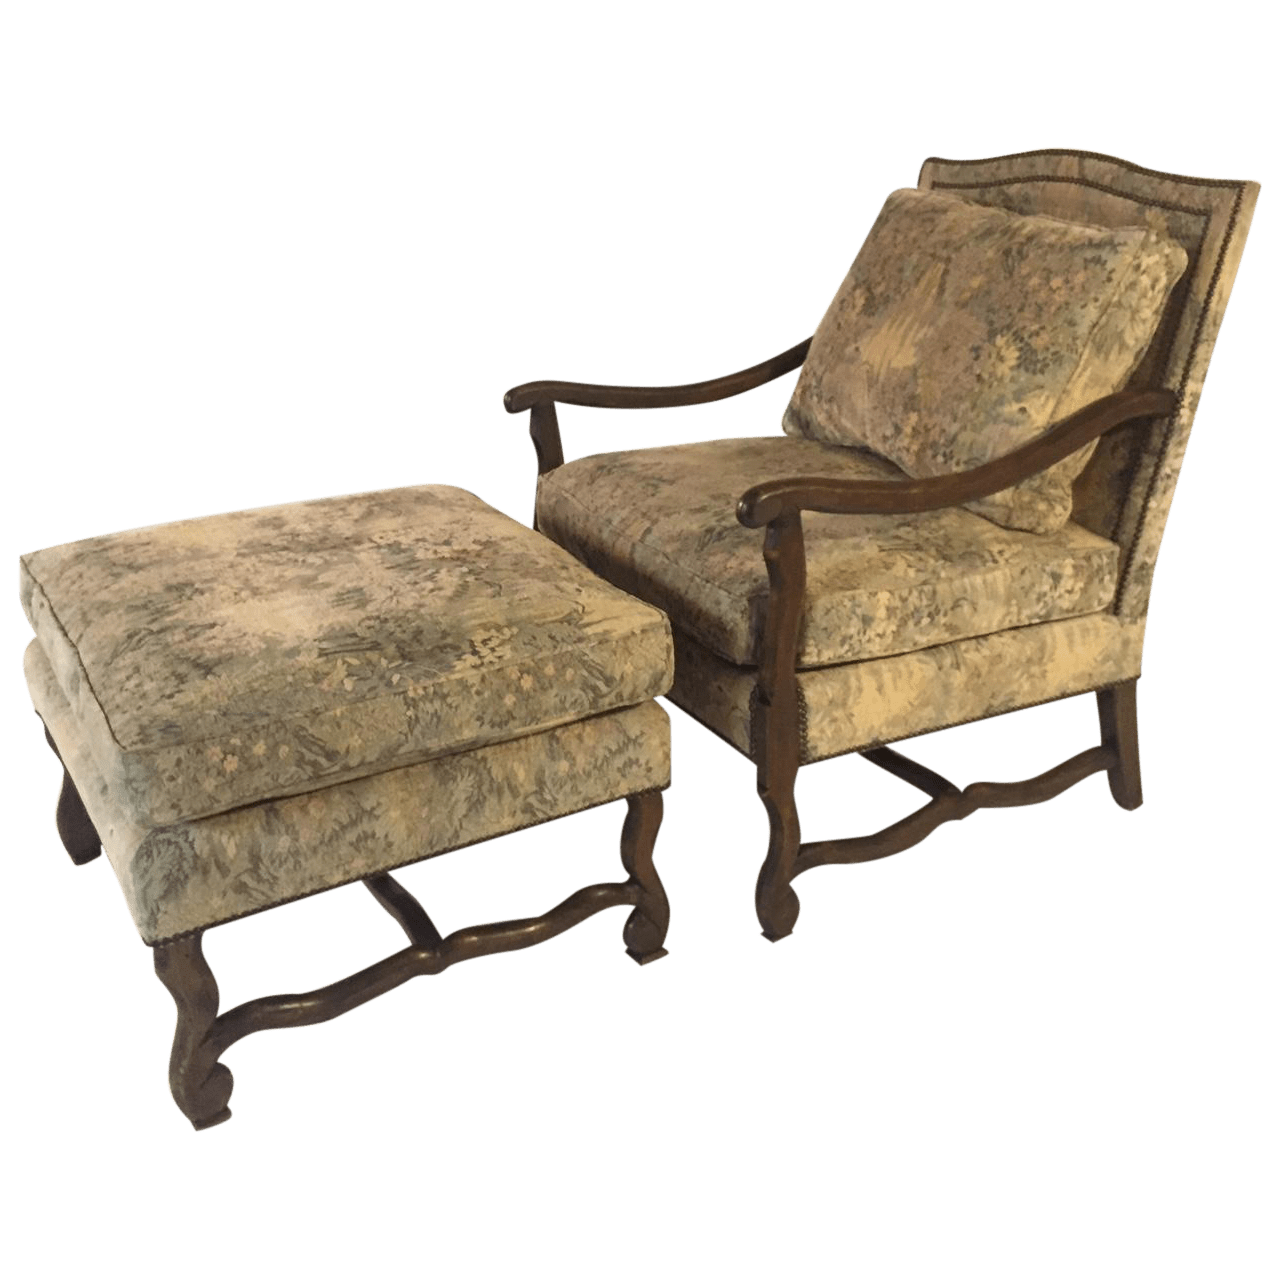 Barcelona Lounge Chair Barcelona Lounge Chair And Ottoman Set Chairish